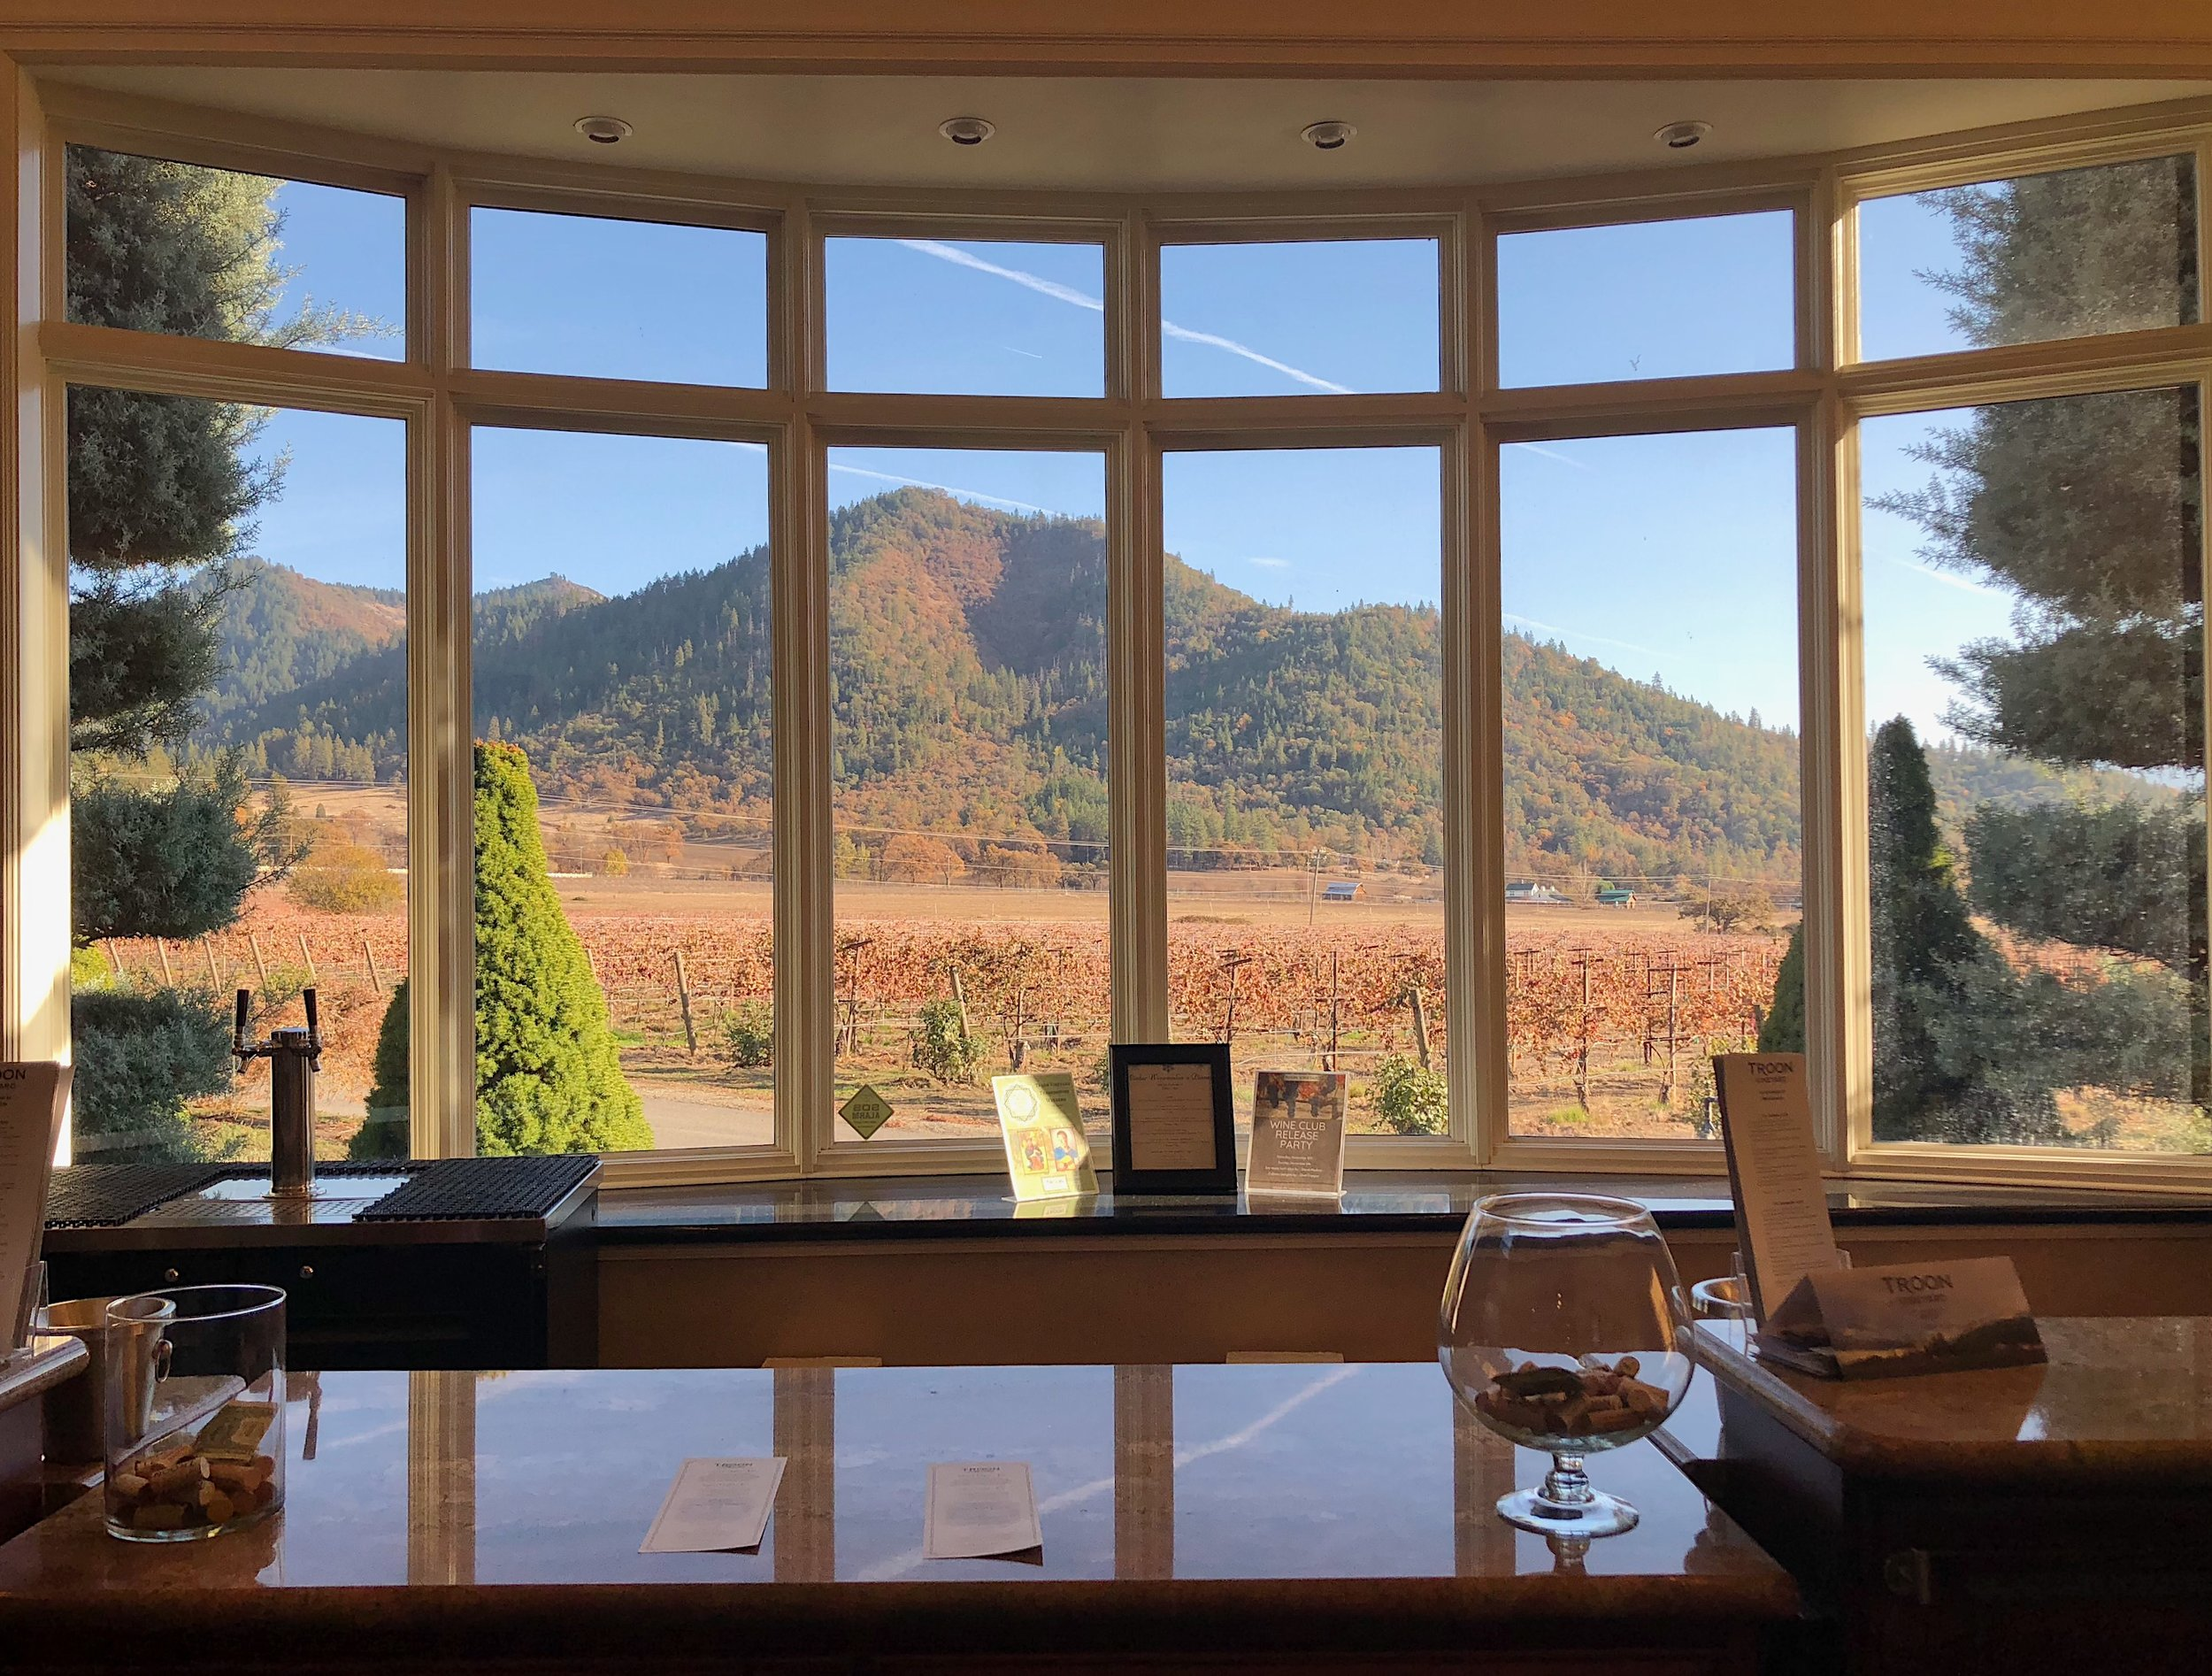 View from the Troon tasting room